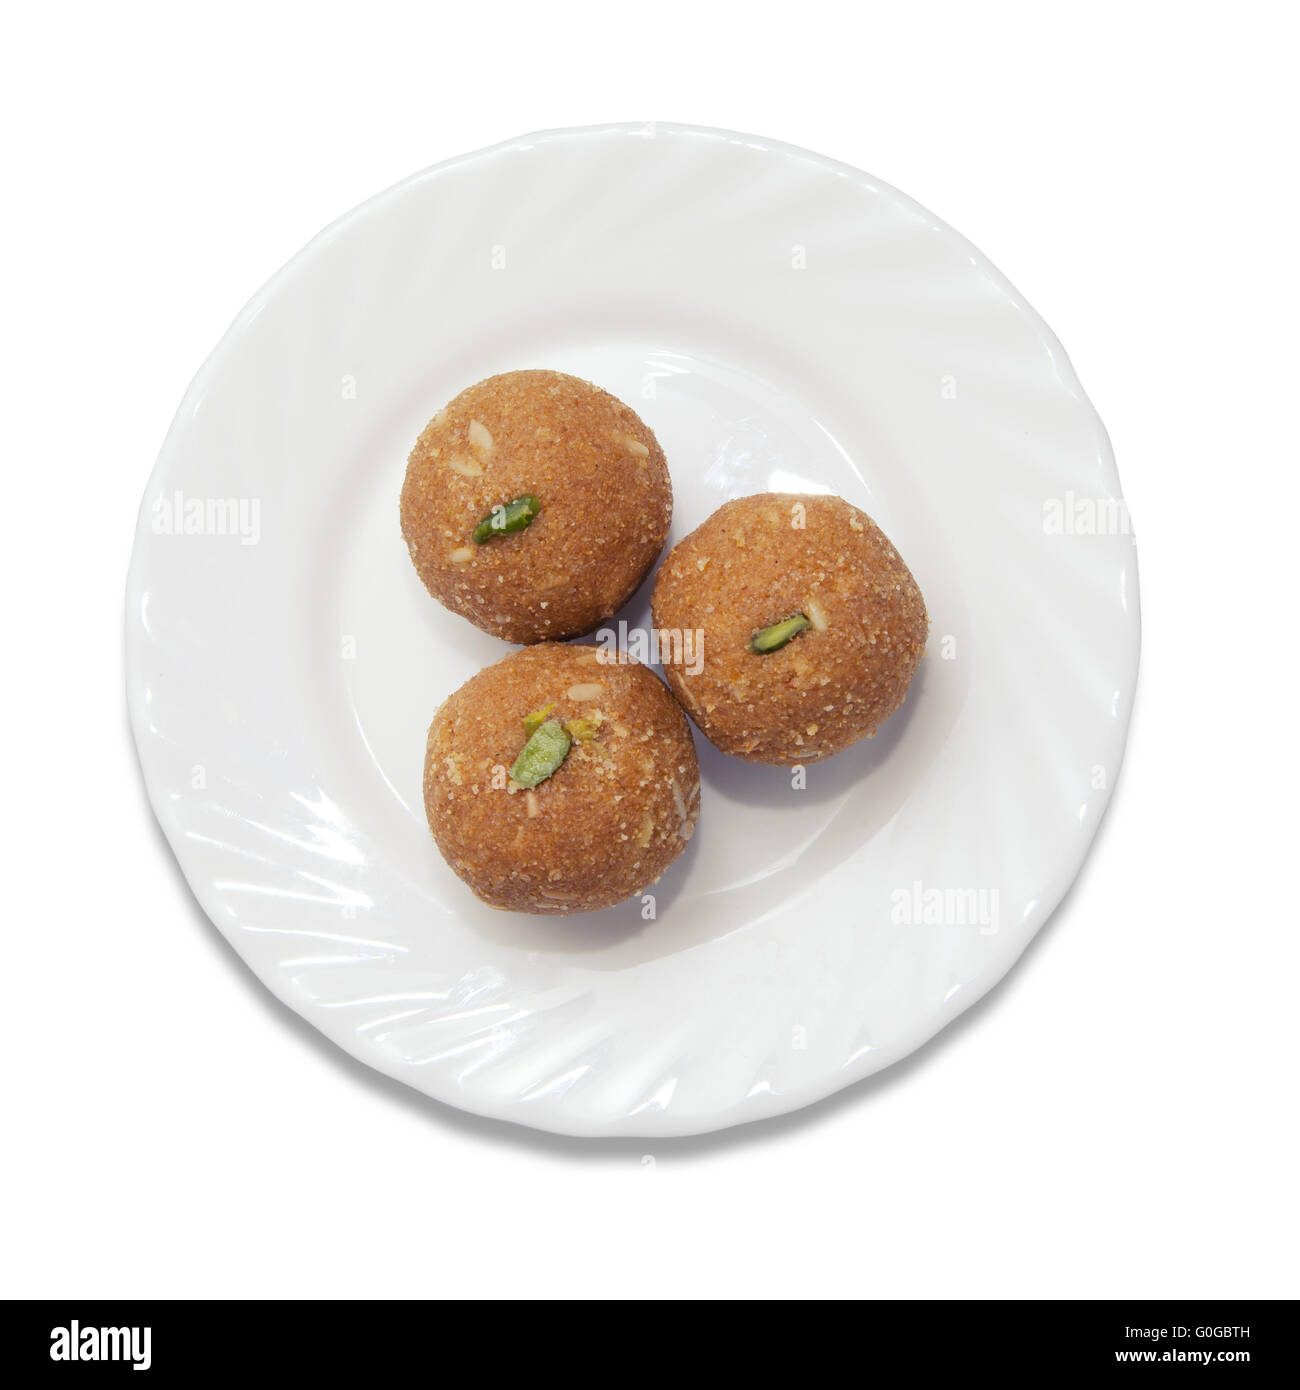 Indian sweets on a plate - Stock Image